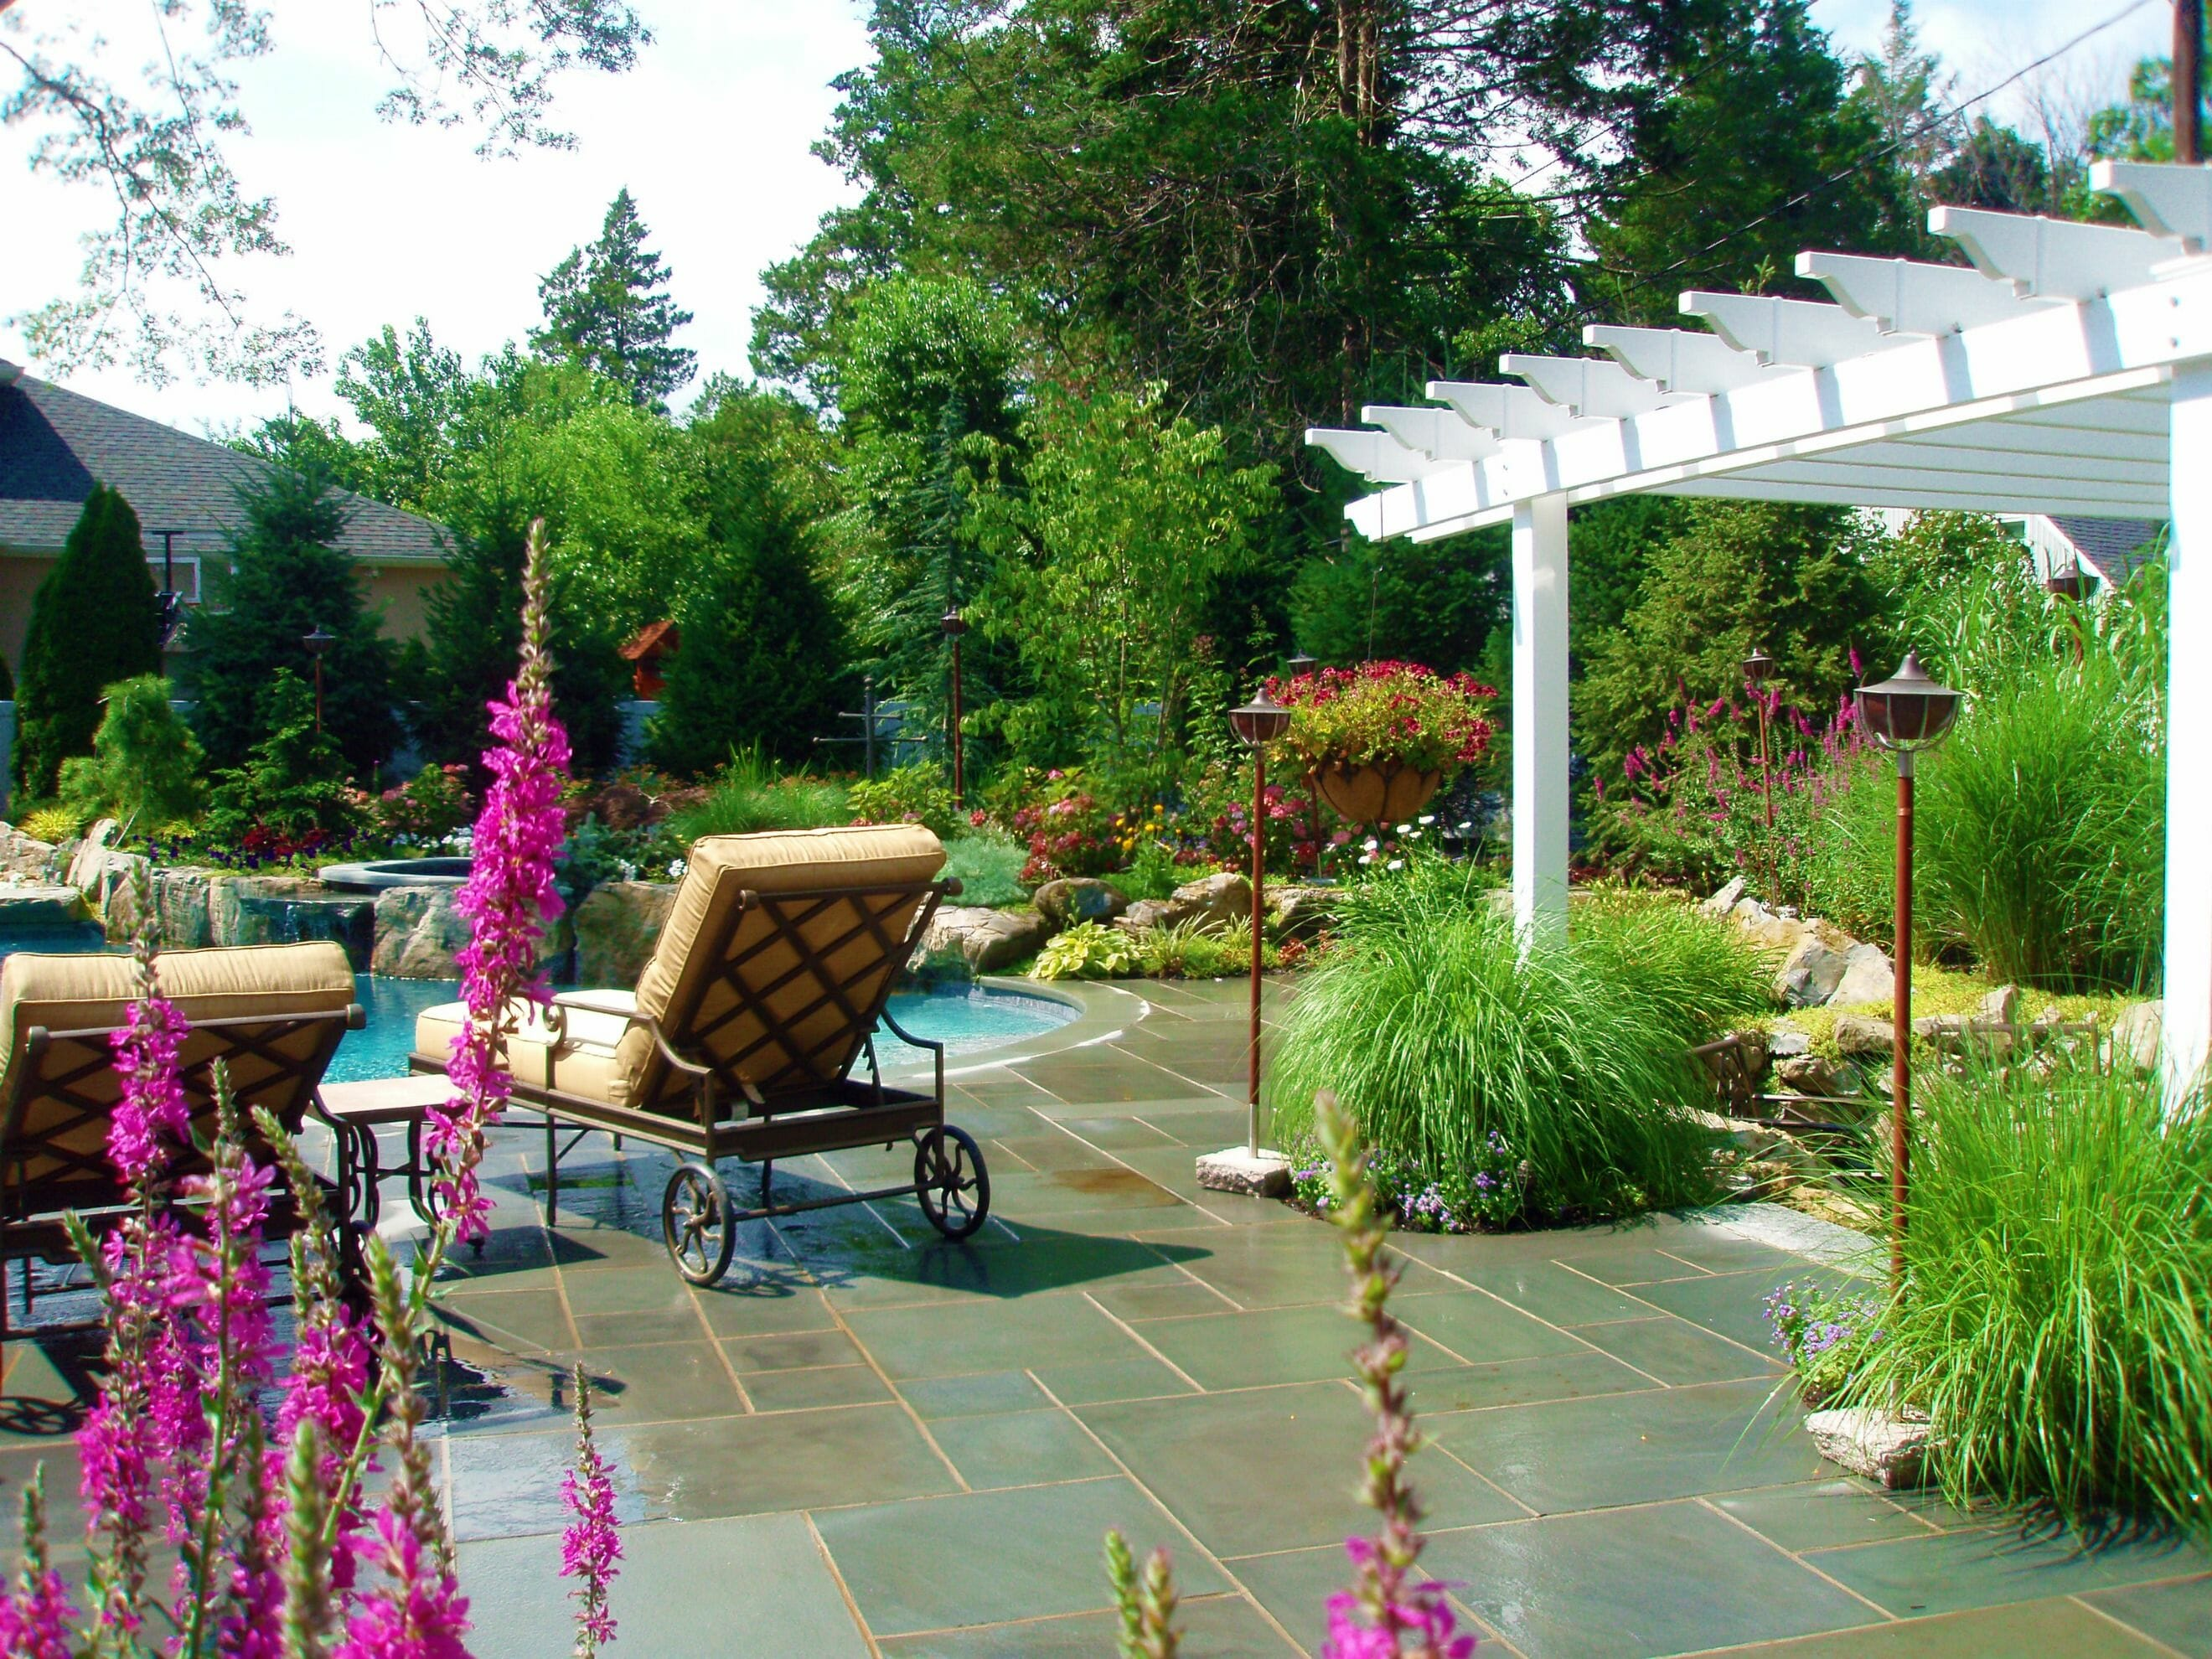 Landscape design online 5 hot tips and tricks decorilla for Landscape design help